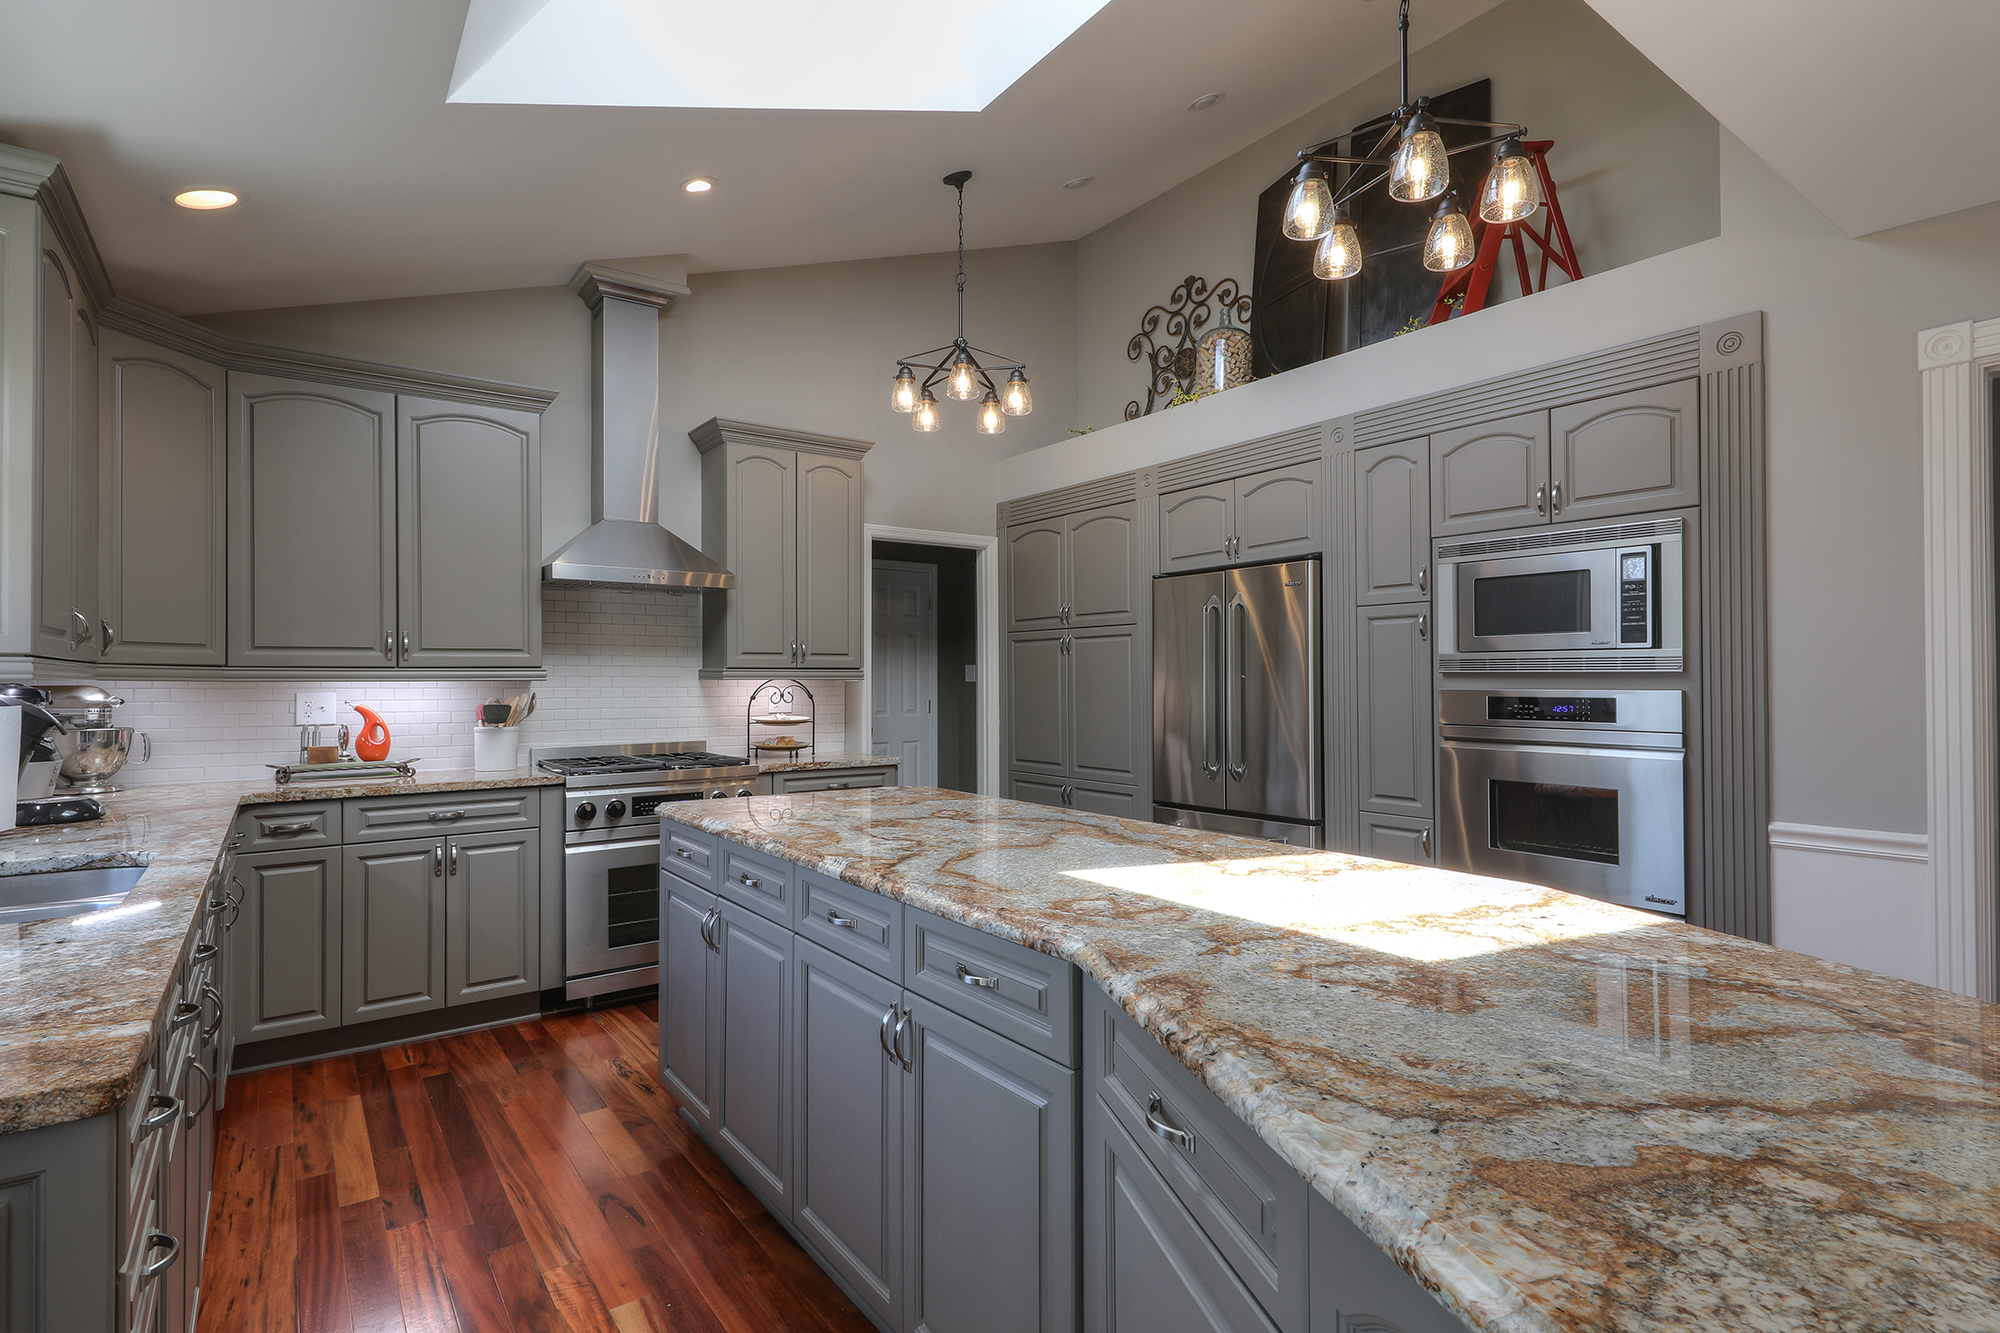 Kitchen Cabinet Refinishing in Fenton Missouri